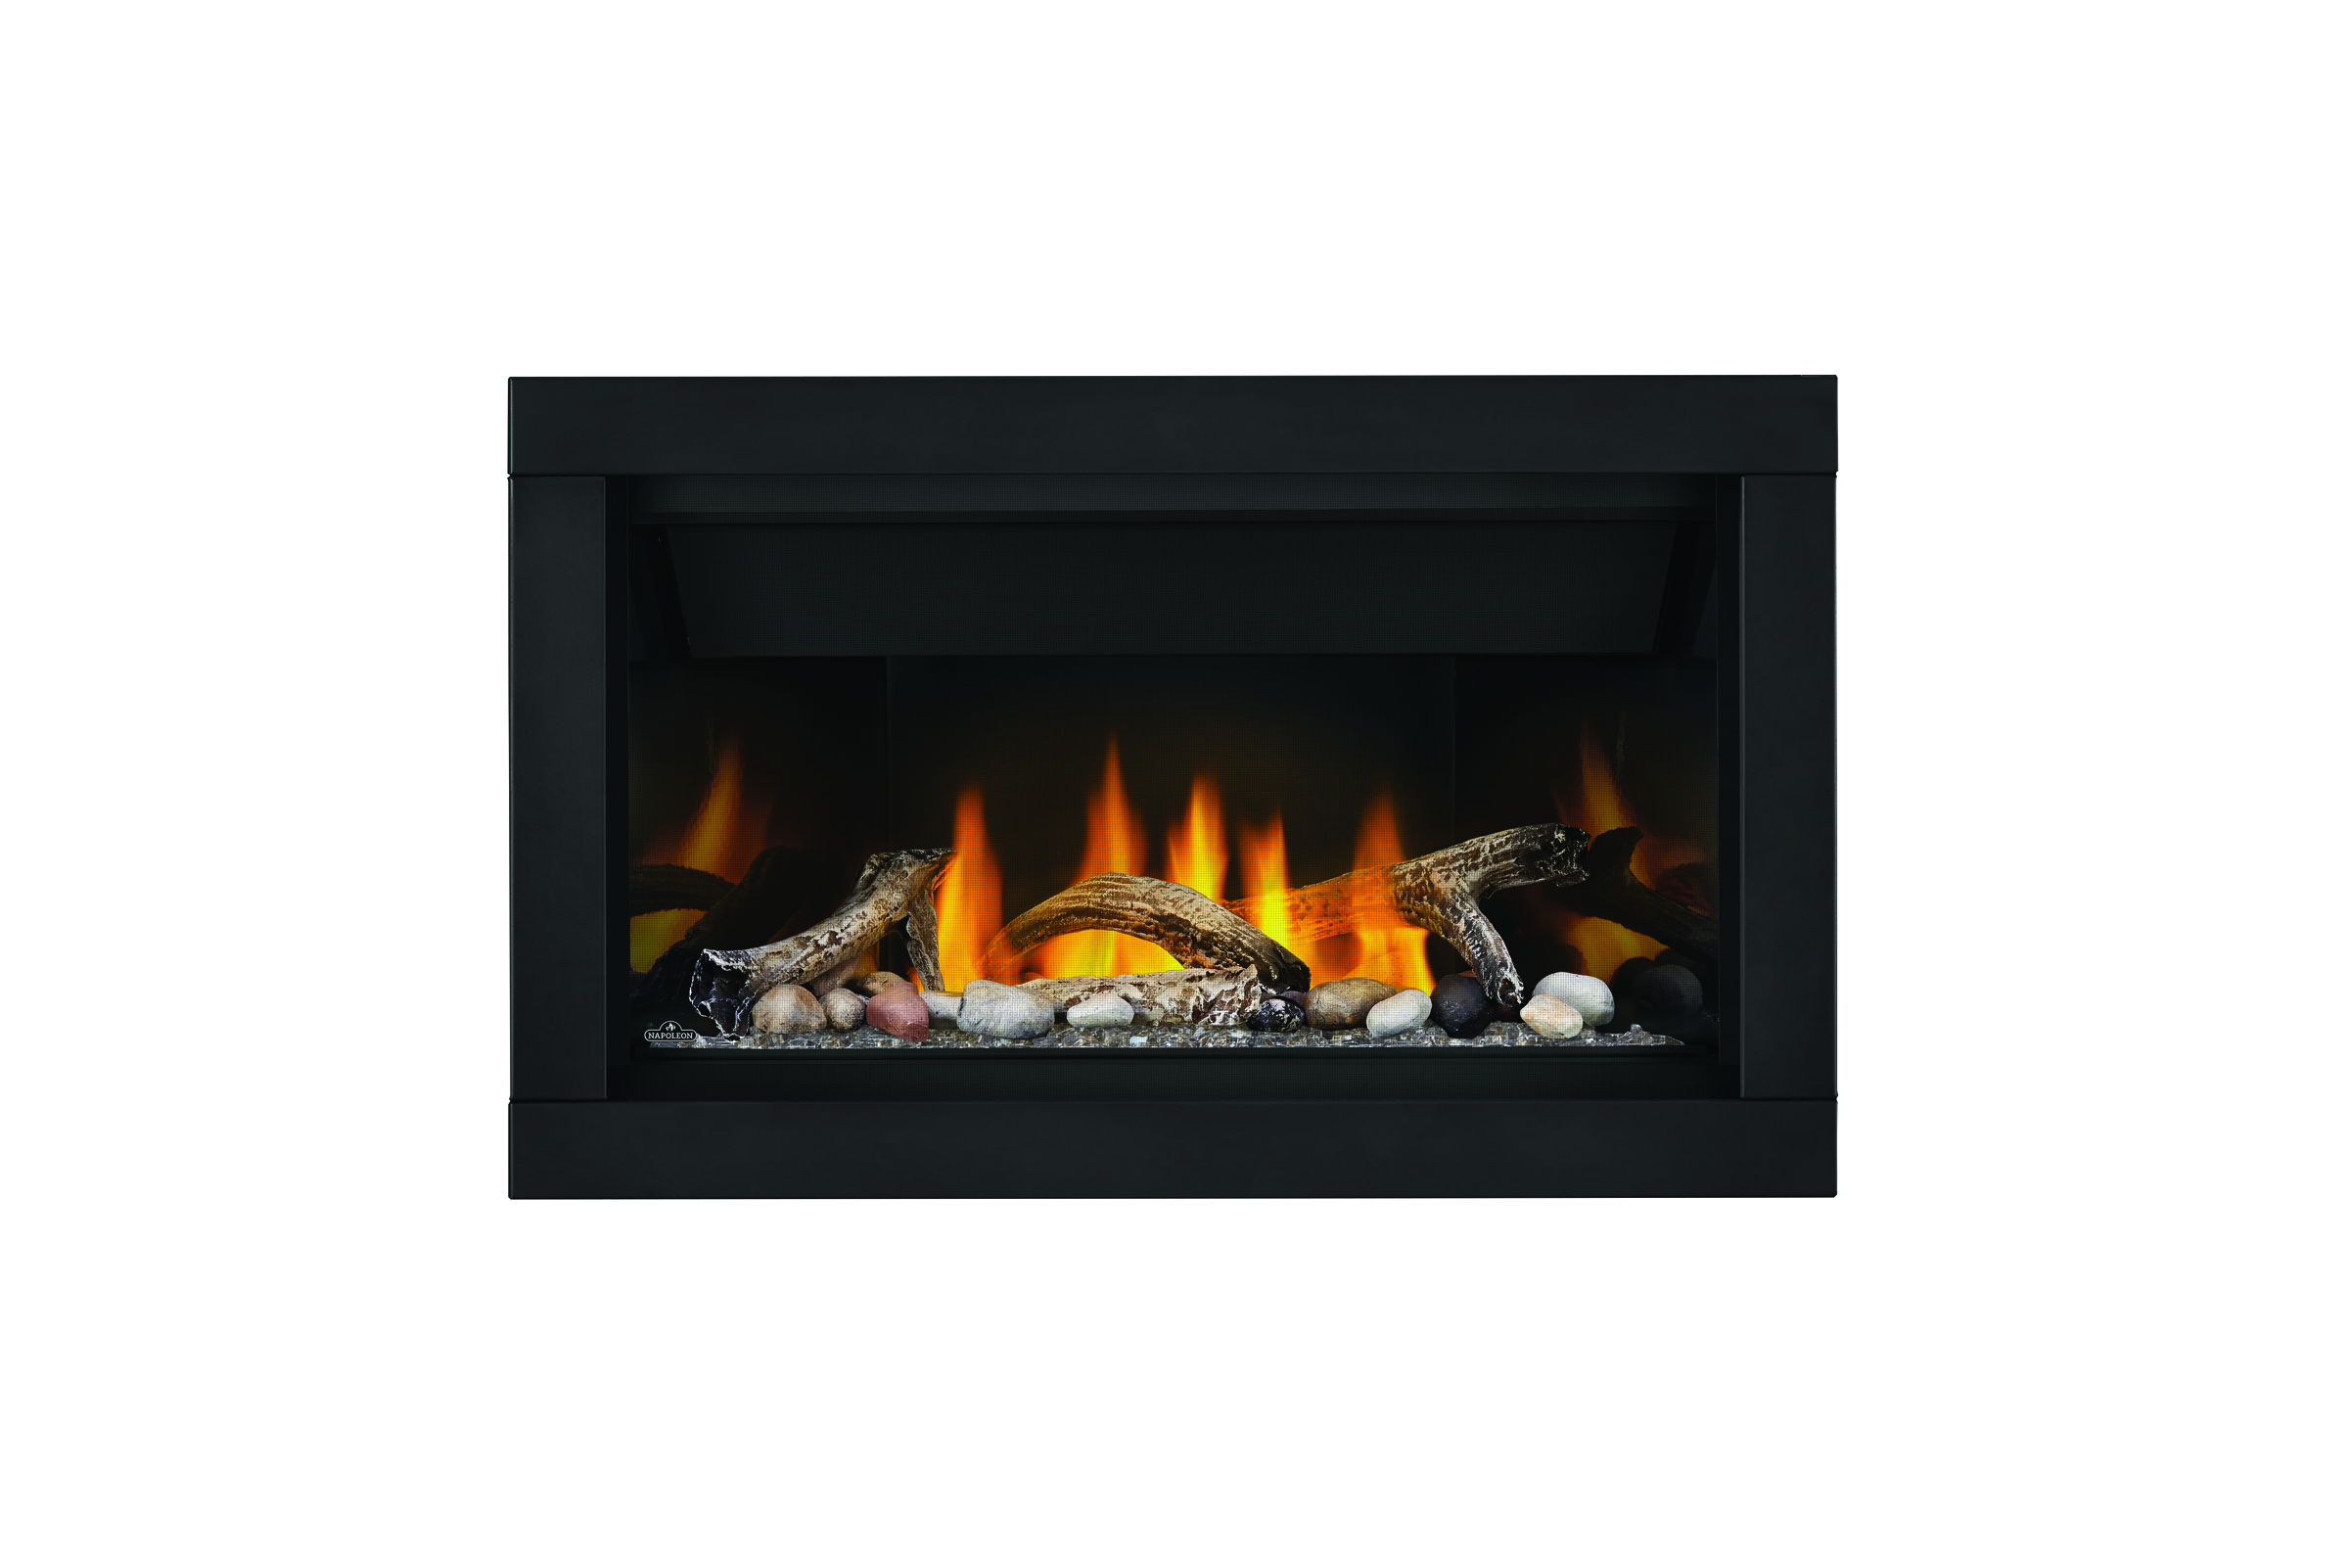 Napoleon Acsent-BL36-1-crushed-glass-clear-mineral-rocks-driftwood-PRRP-premium-surround